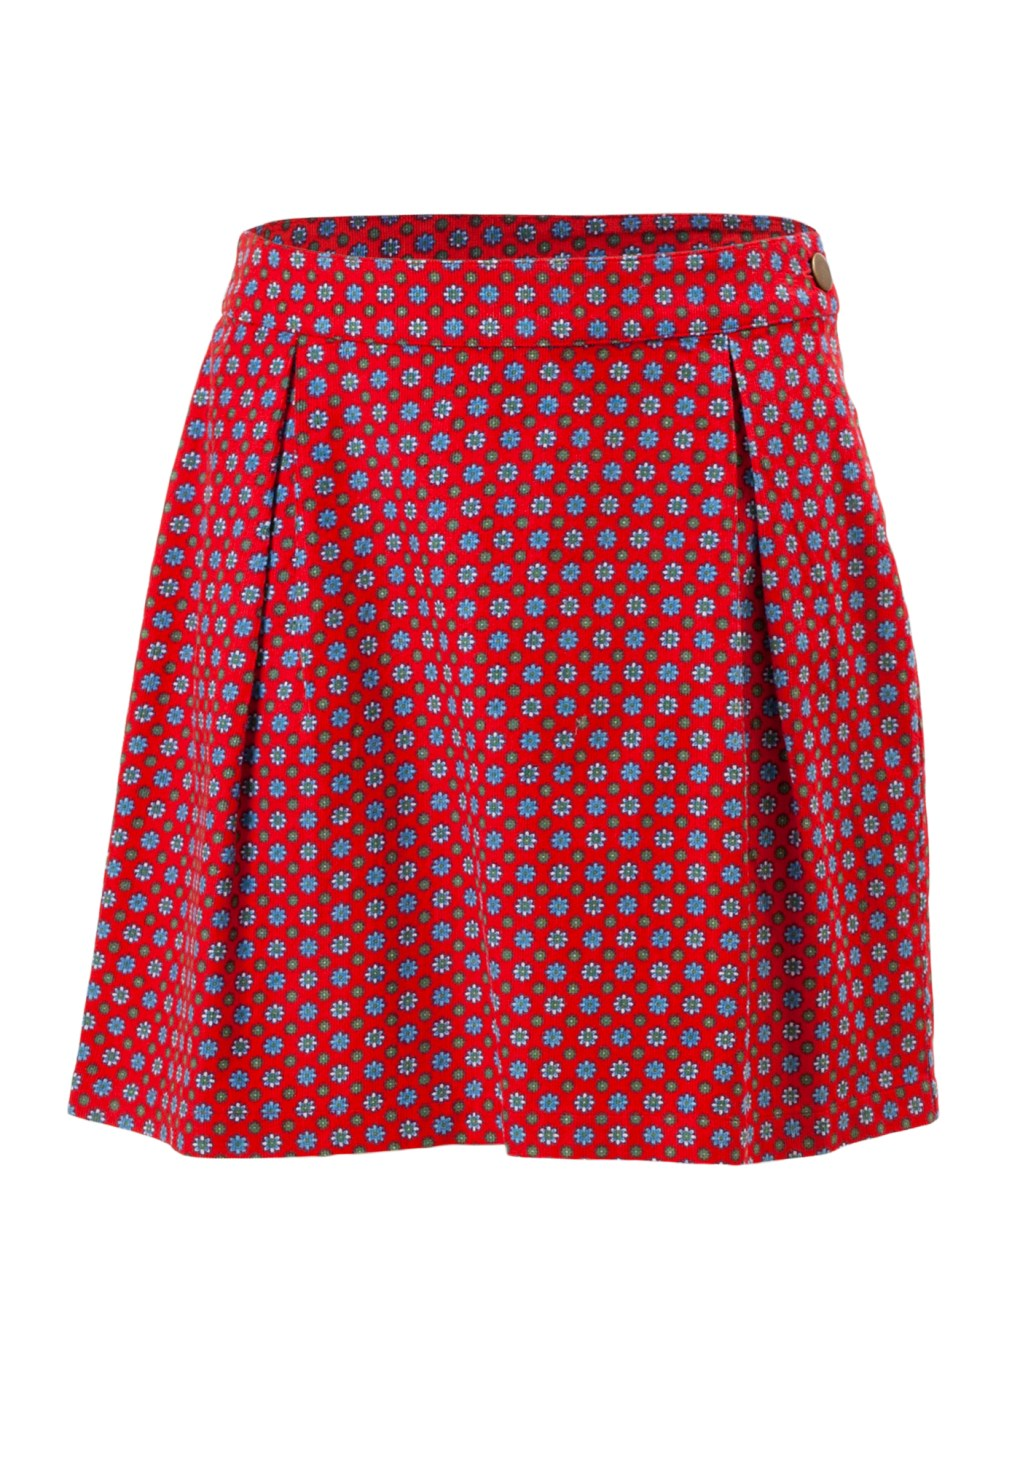 Holly Berry Girls Knee Length Skirt in Red Printed Cord